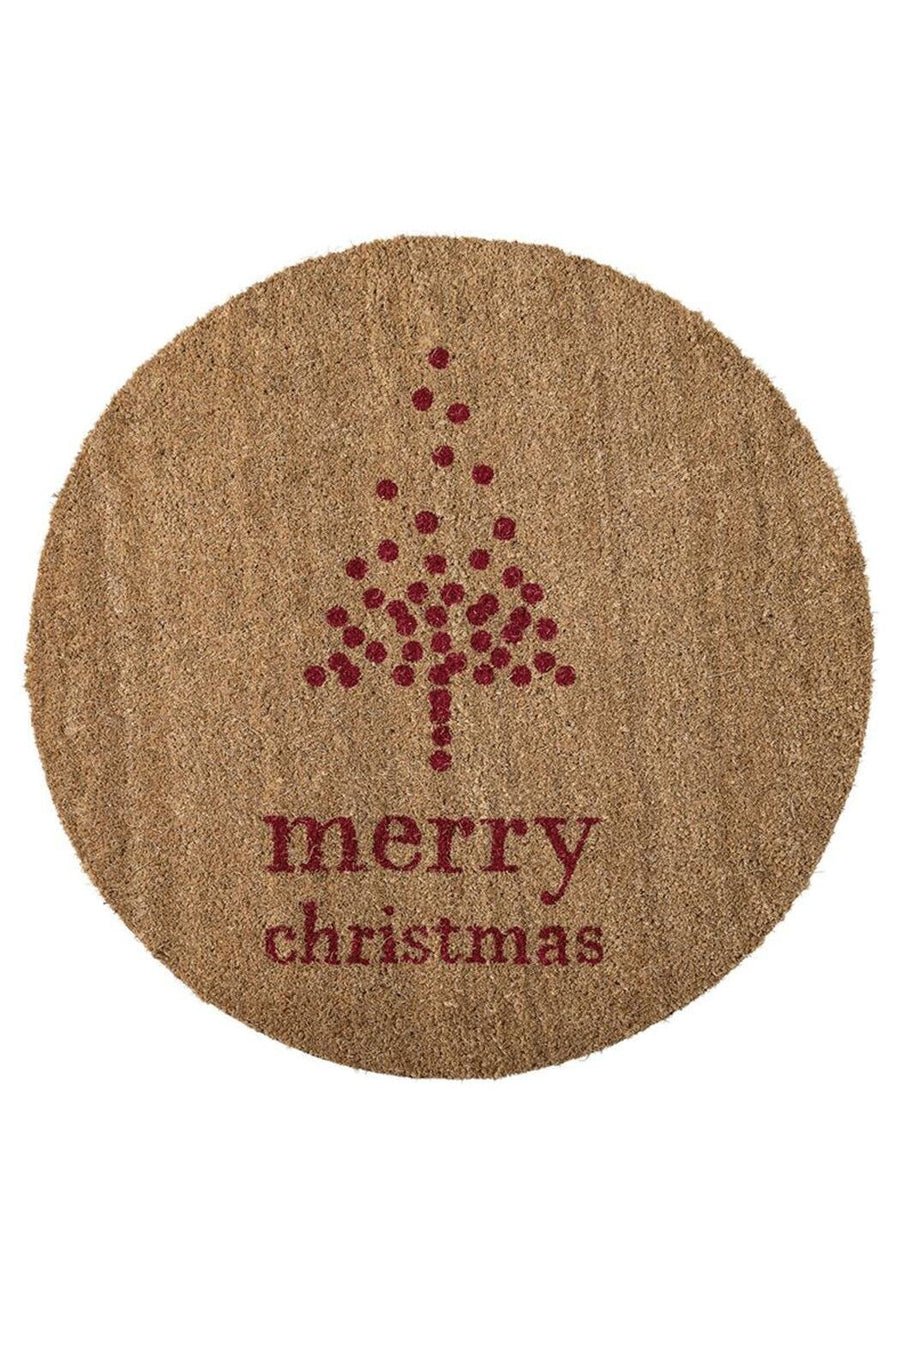 Merry Christmas Round Coir Doormat